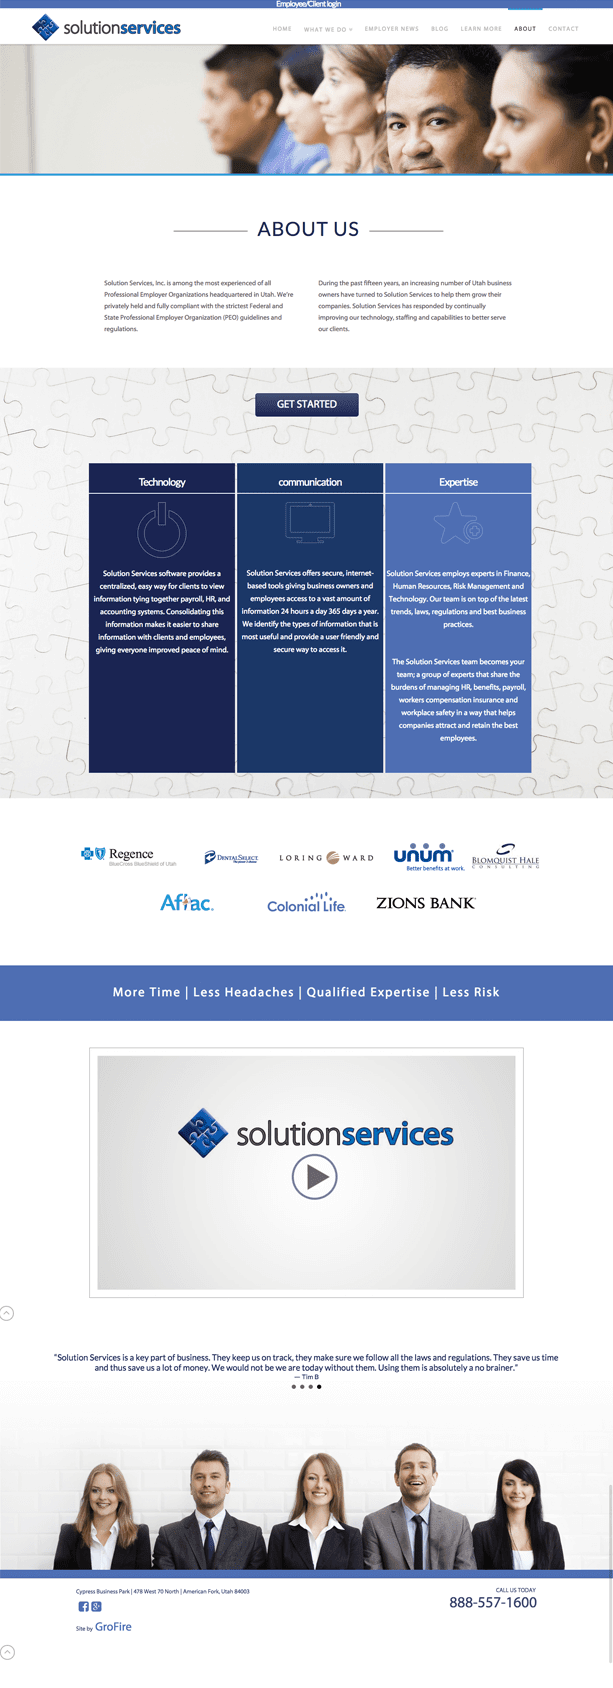 Solution-Services_3